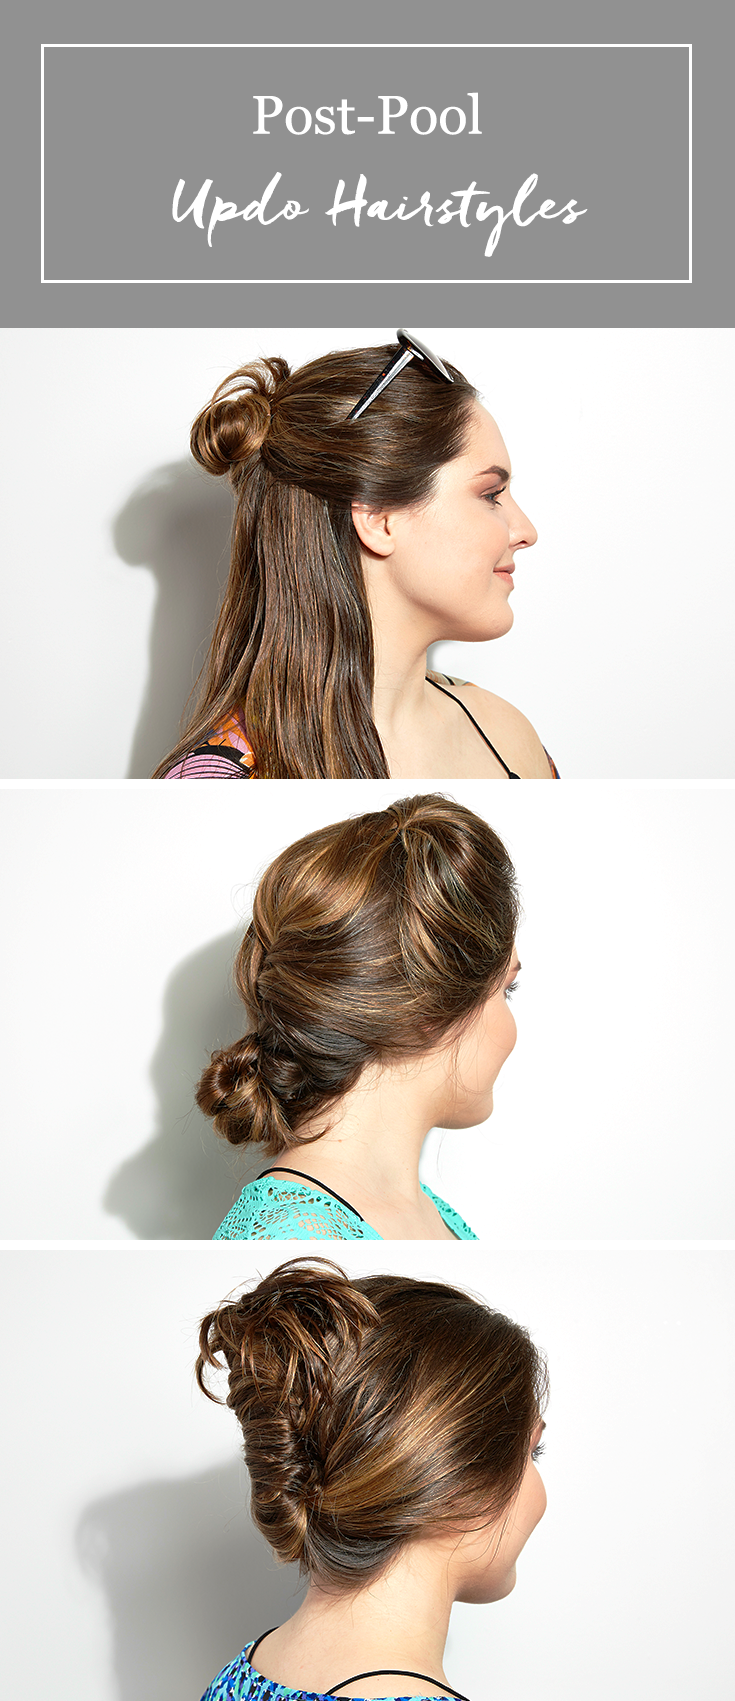 3 easy post-pool (or beach) hairstyles. tutorials and ideas for